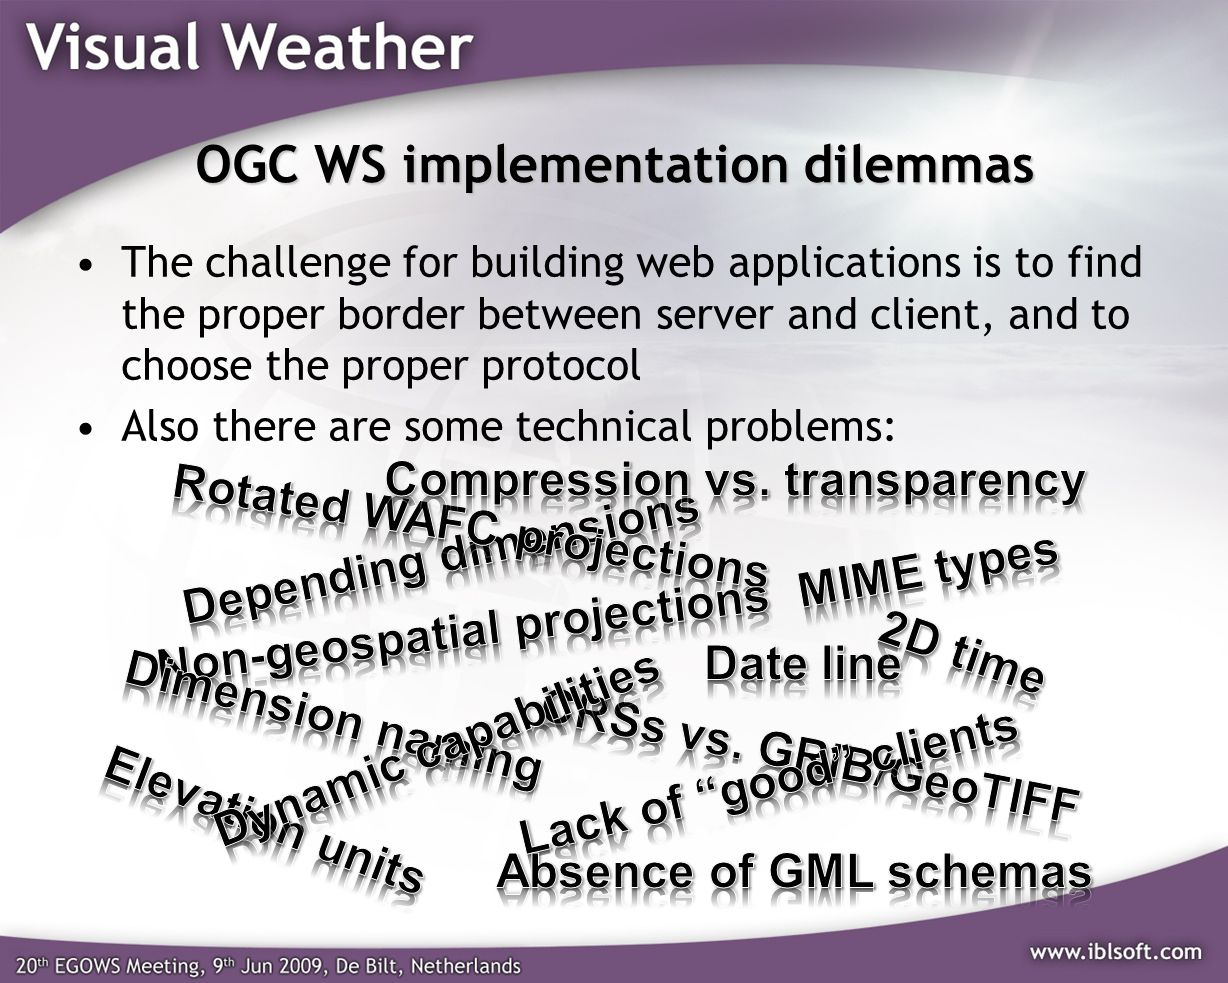 OGC WS implementation dilemmas The challenge for building web applications is to find the proper border between server and client, and to choose the proper protocol Also there are some technical problems: